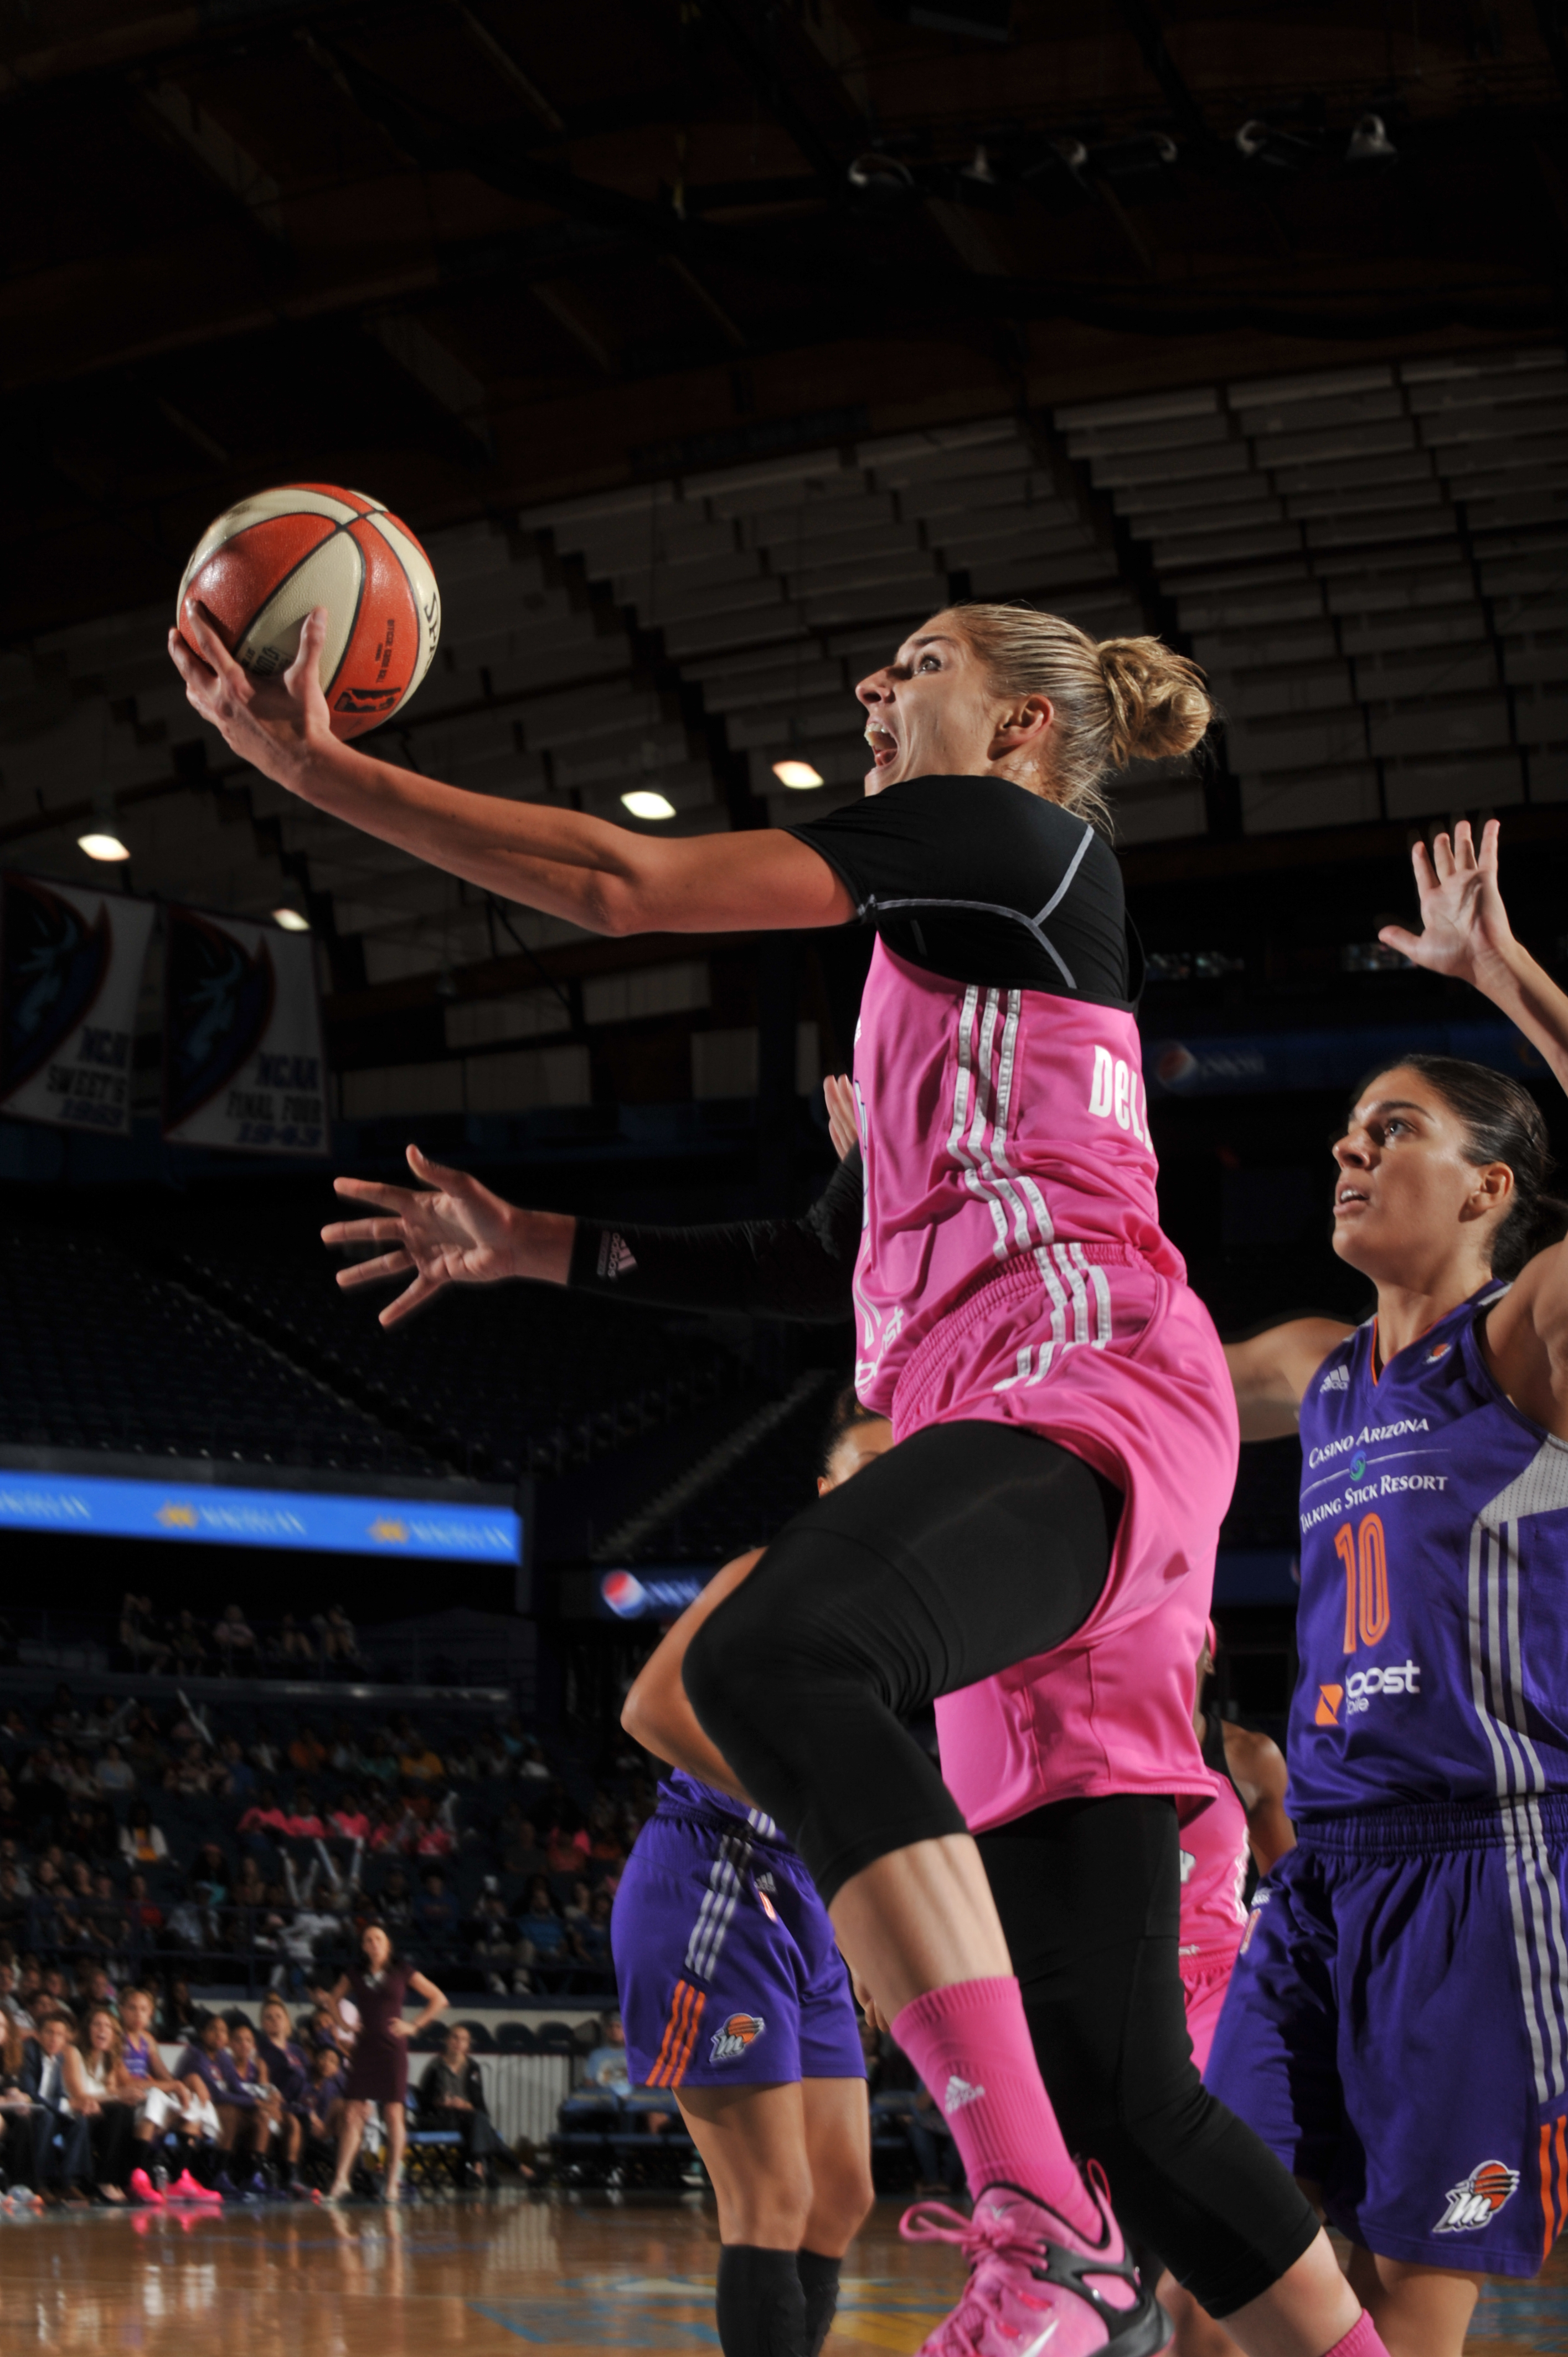 ROSEMONT, IL - AUGUST 9: Elena Delle Donne #11 of the Chicago Sky shoots the ball against the Phoenix Mercury on August 9, 2015 at the Allstate Arena in Rosemont, Illinois. (Photo by Randy Belice/NBAE via Getty Images)